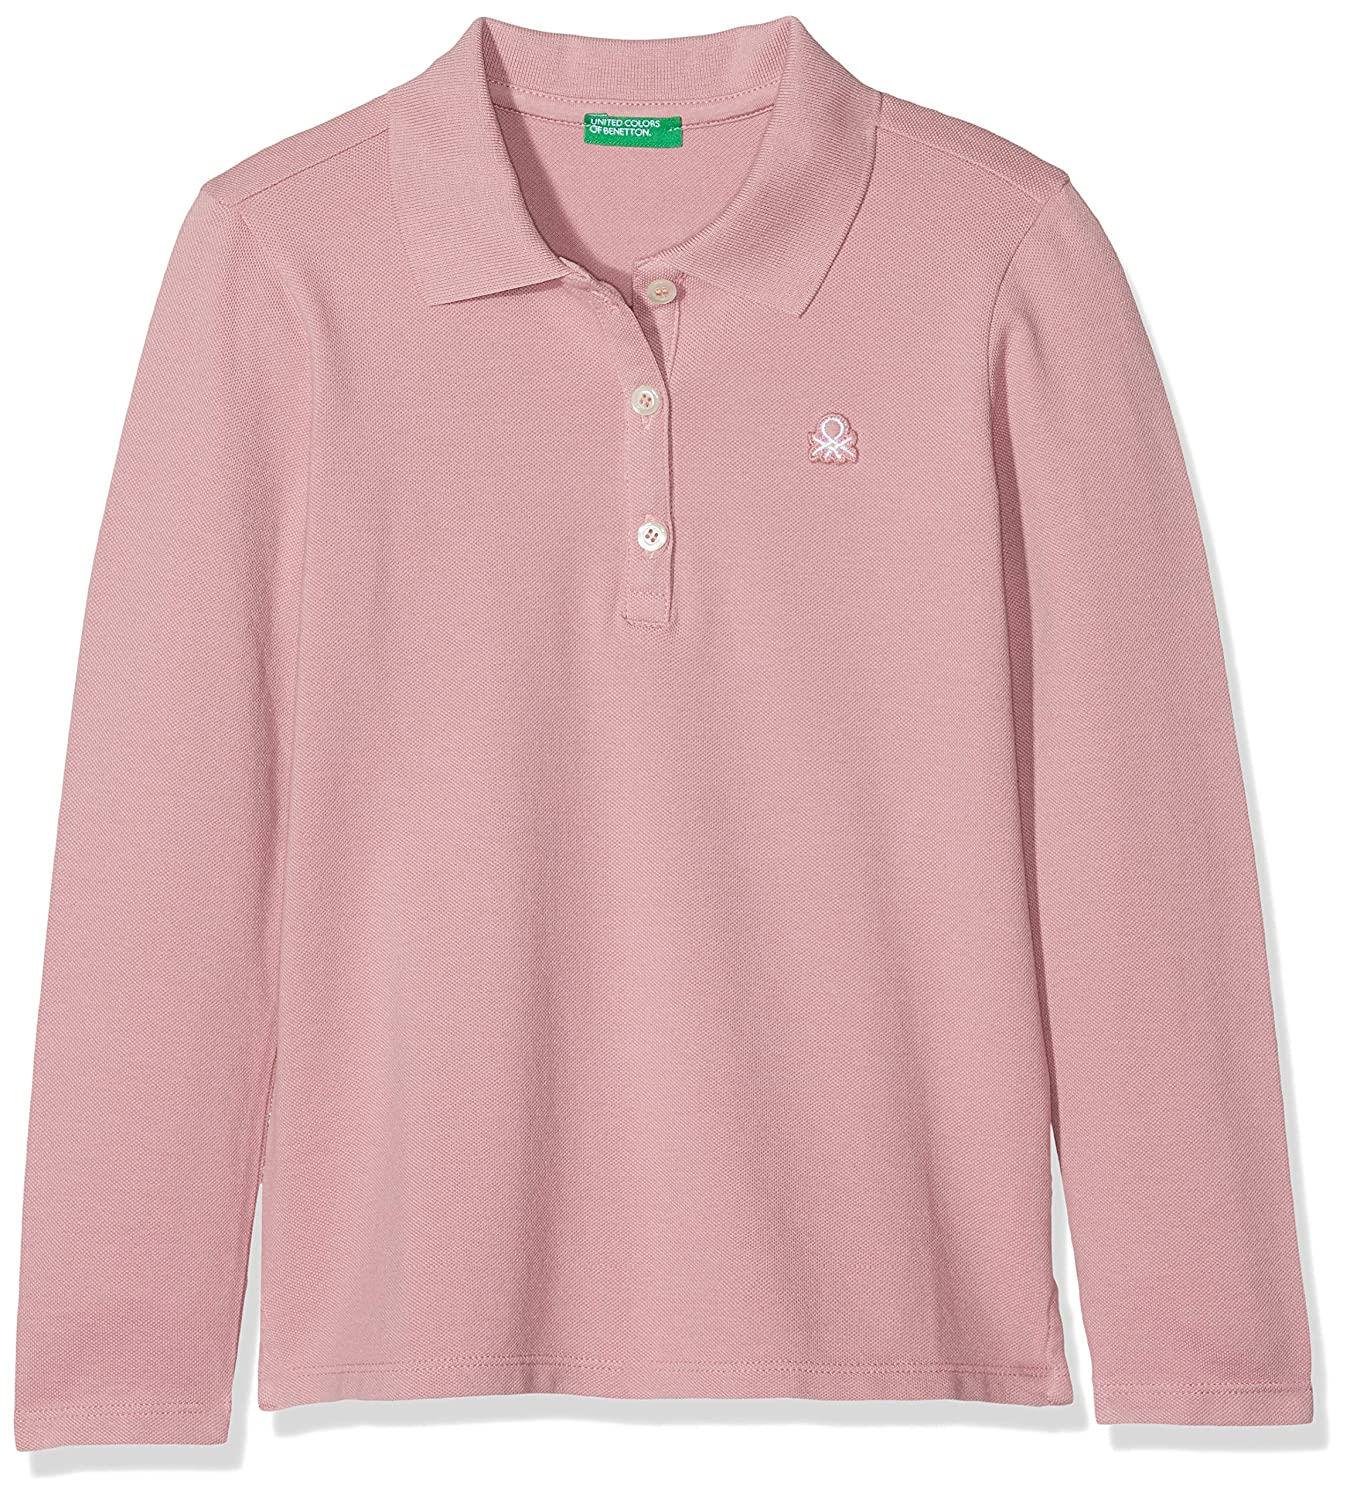 United Colors of Benetton L/S Polo Shirt, Bambina 3WG9C3098